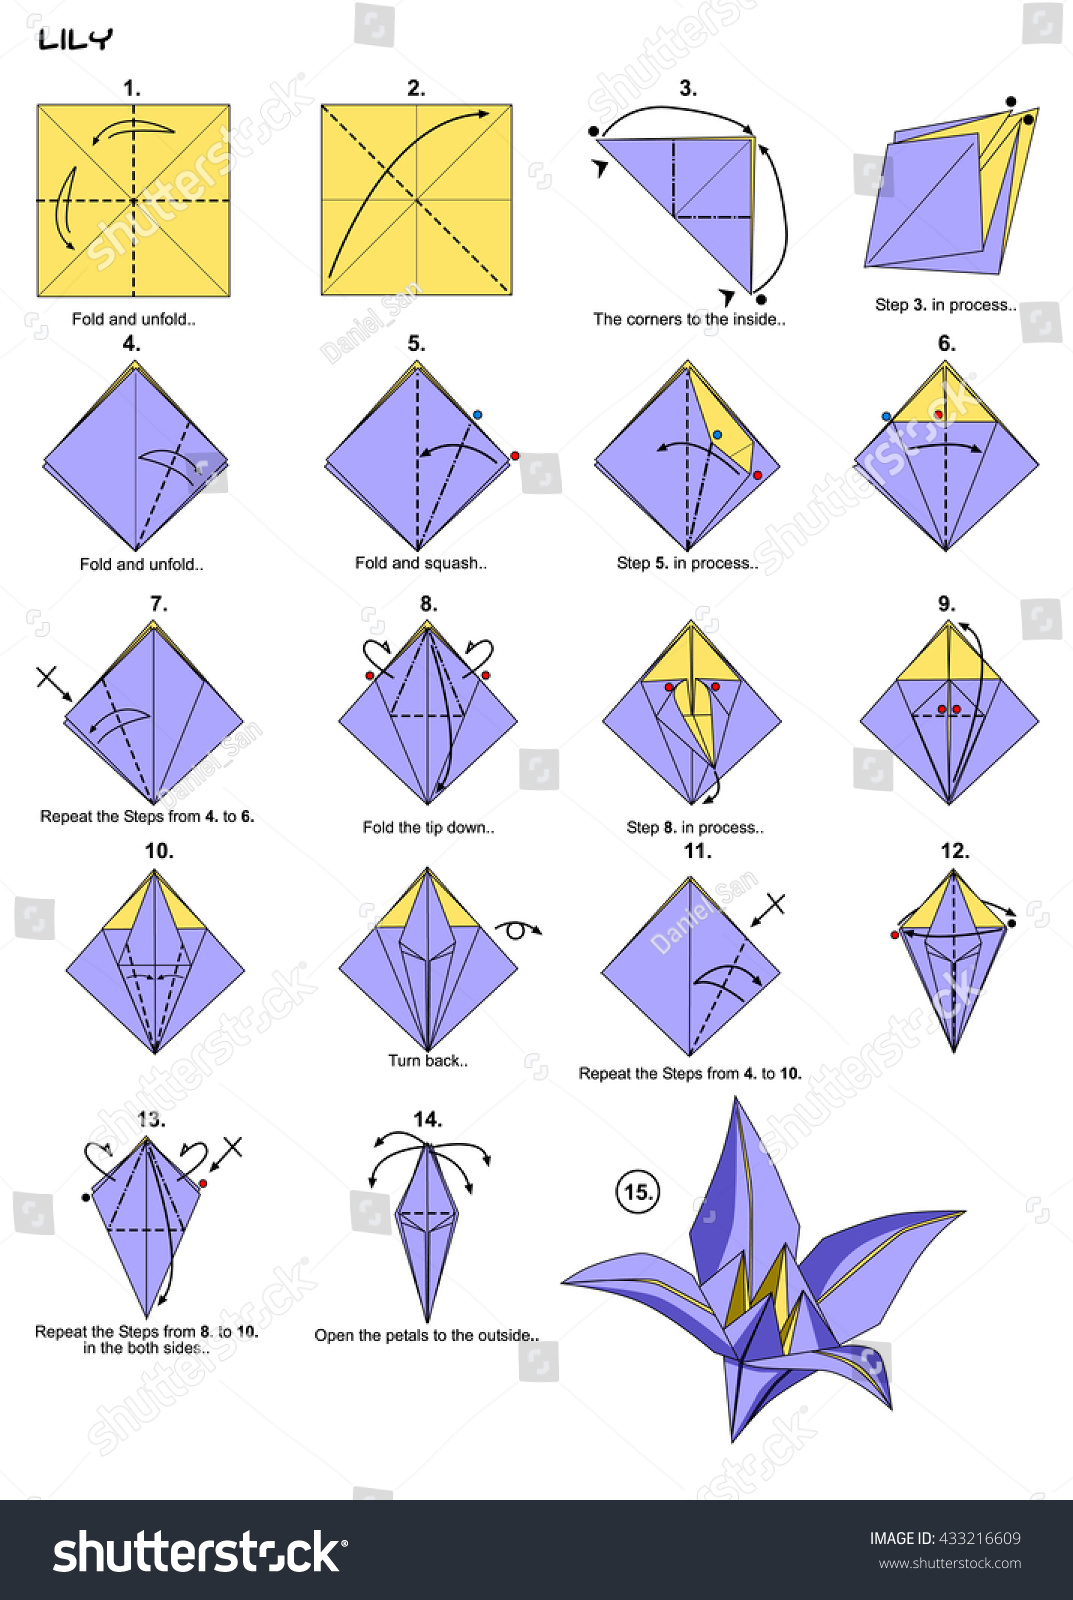 Origami Flower Lily Instructions Steps Stock Illustration 433216609